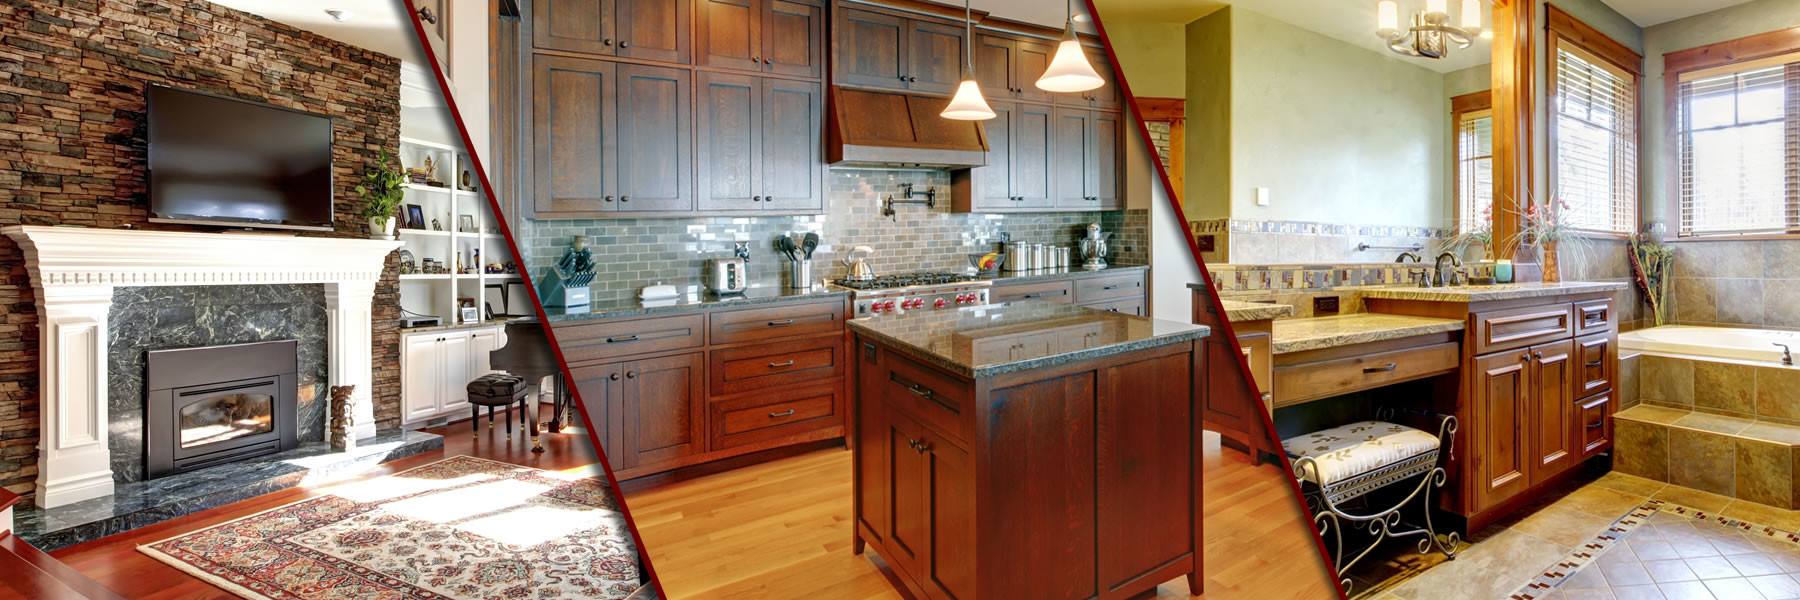 Charmant Orange County Bathroom Remodeling, Kitchen Remodeling, Home Design Build  Contractors